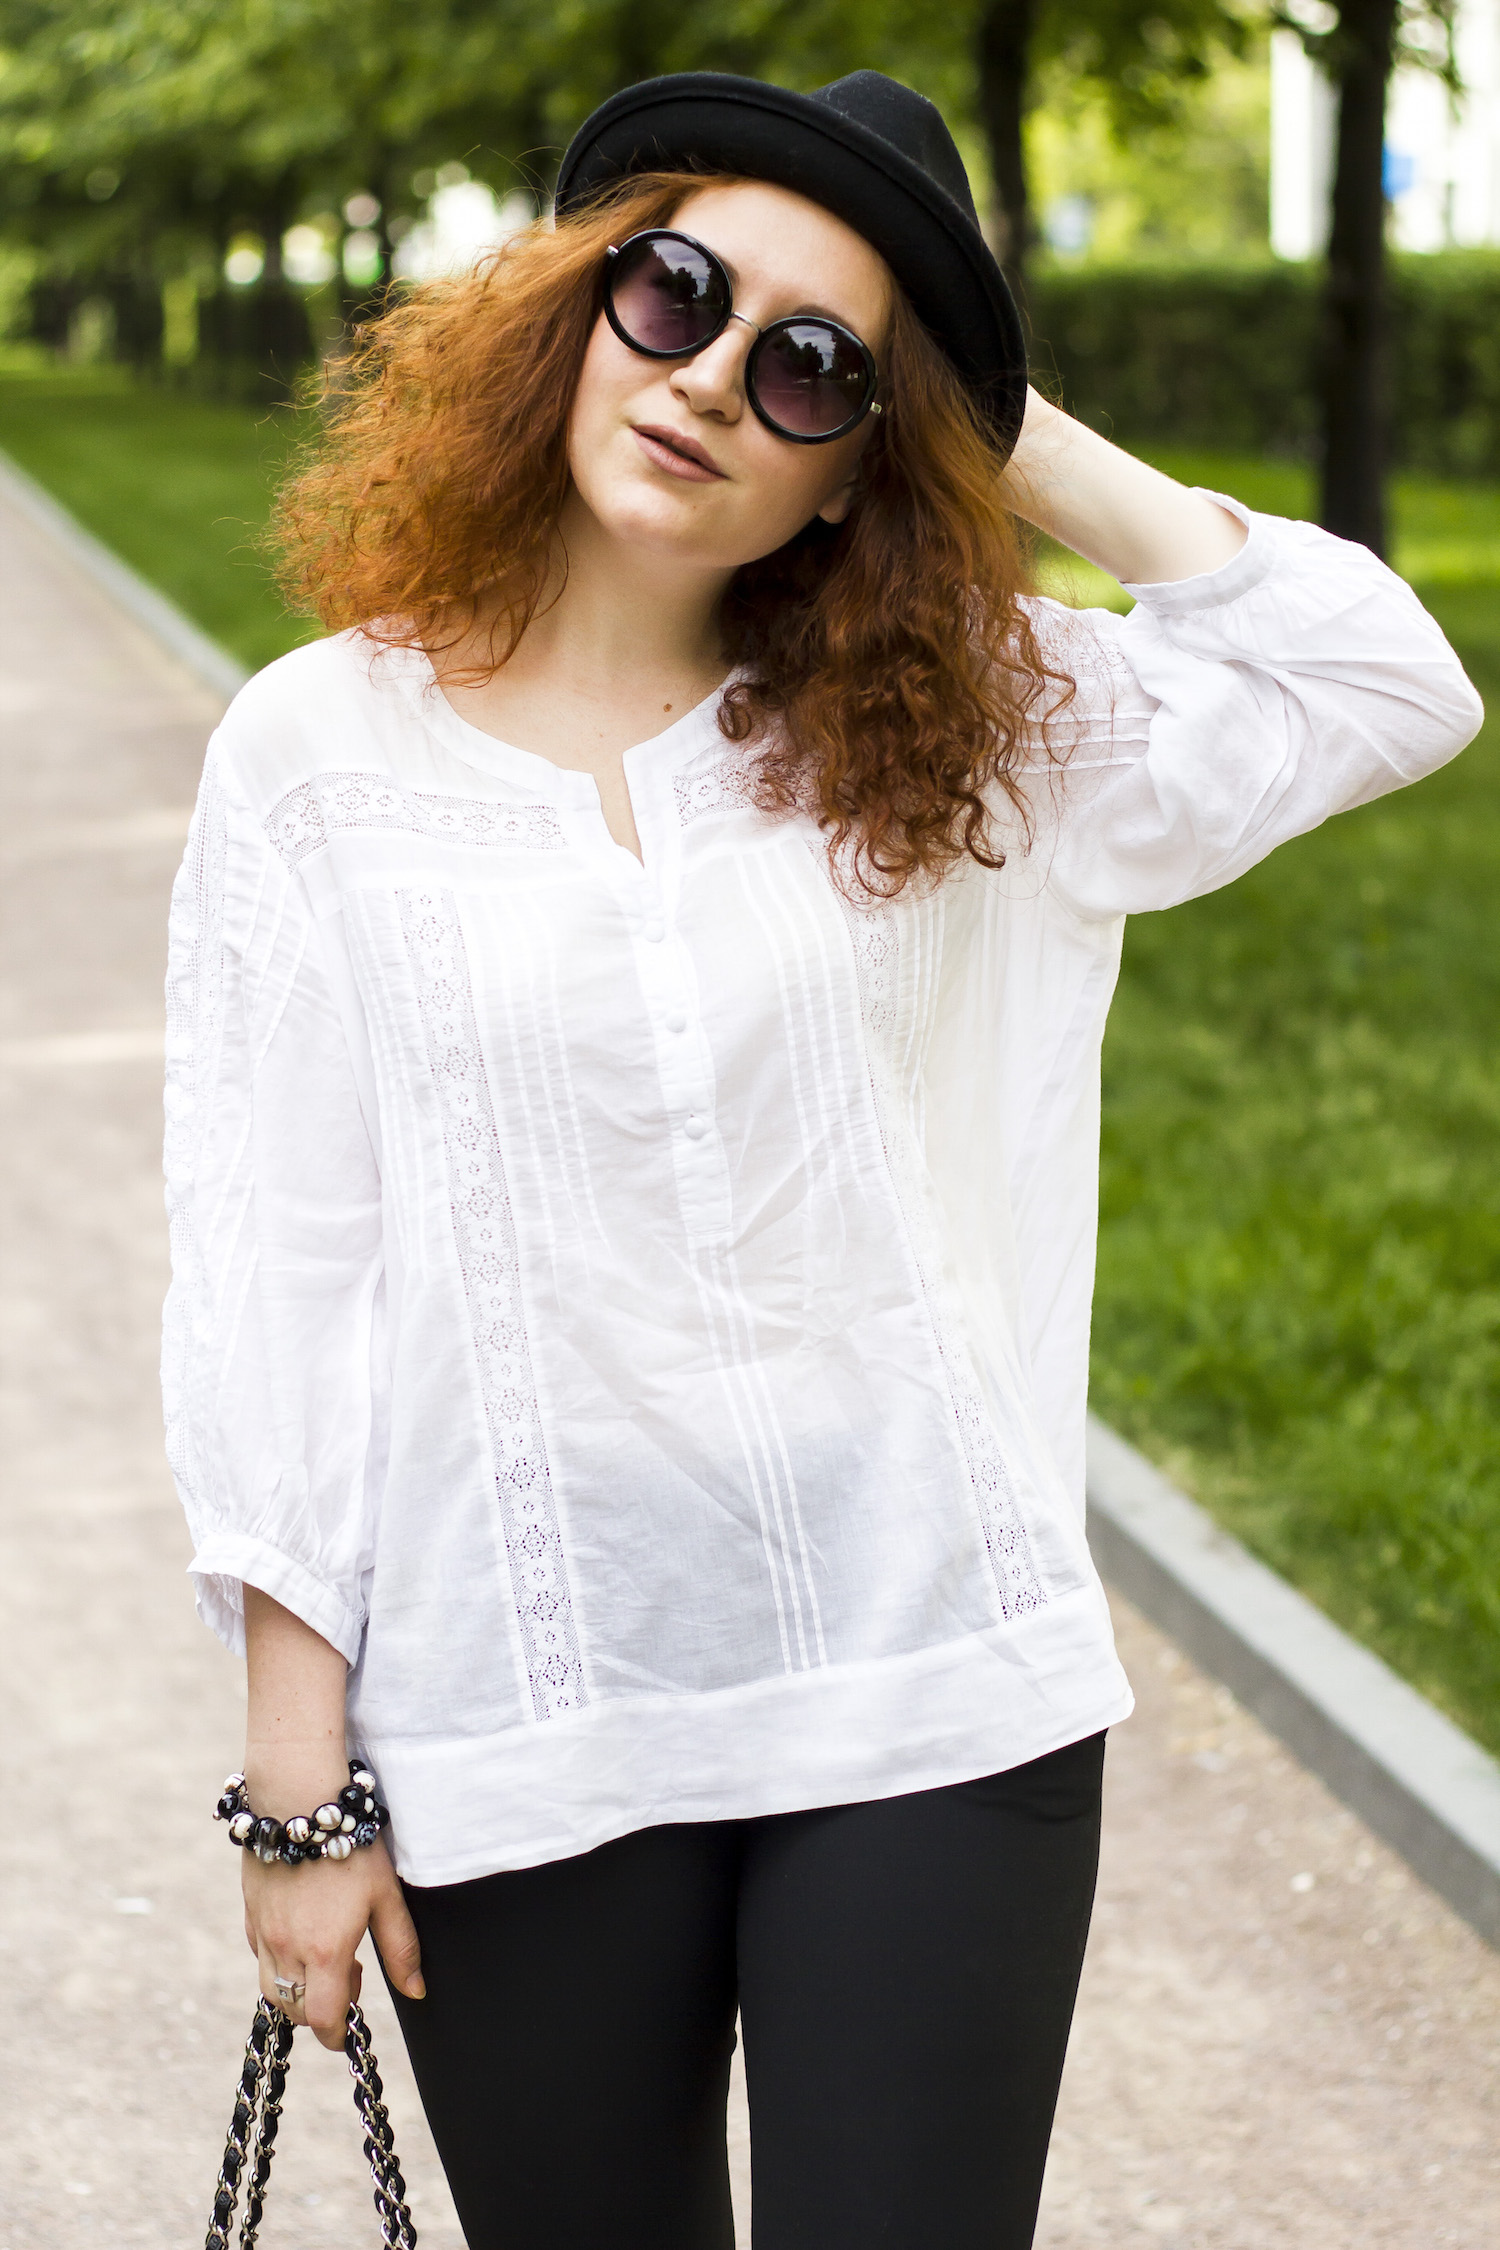 Enn Franco Says, Fashion blog, Outfit of the day, Chanel bag, Gerard Darel shirt, Marni sandals, Street style